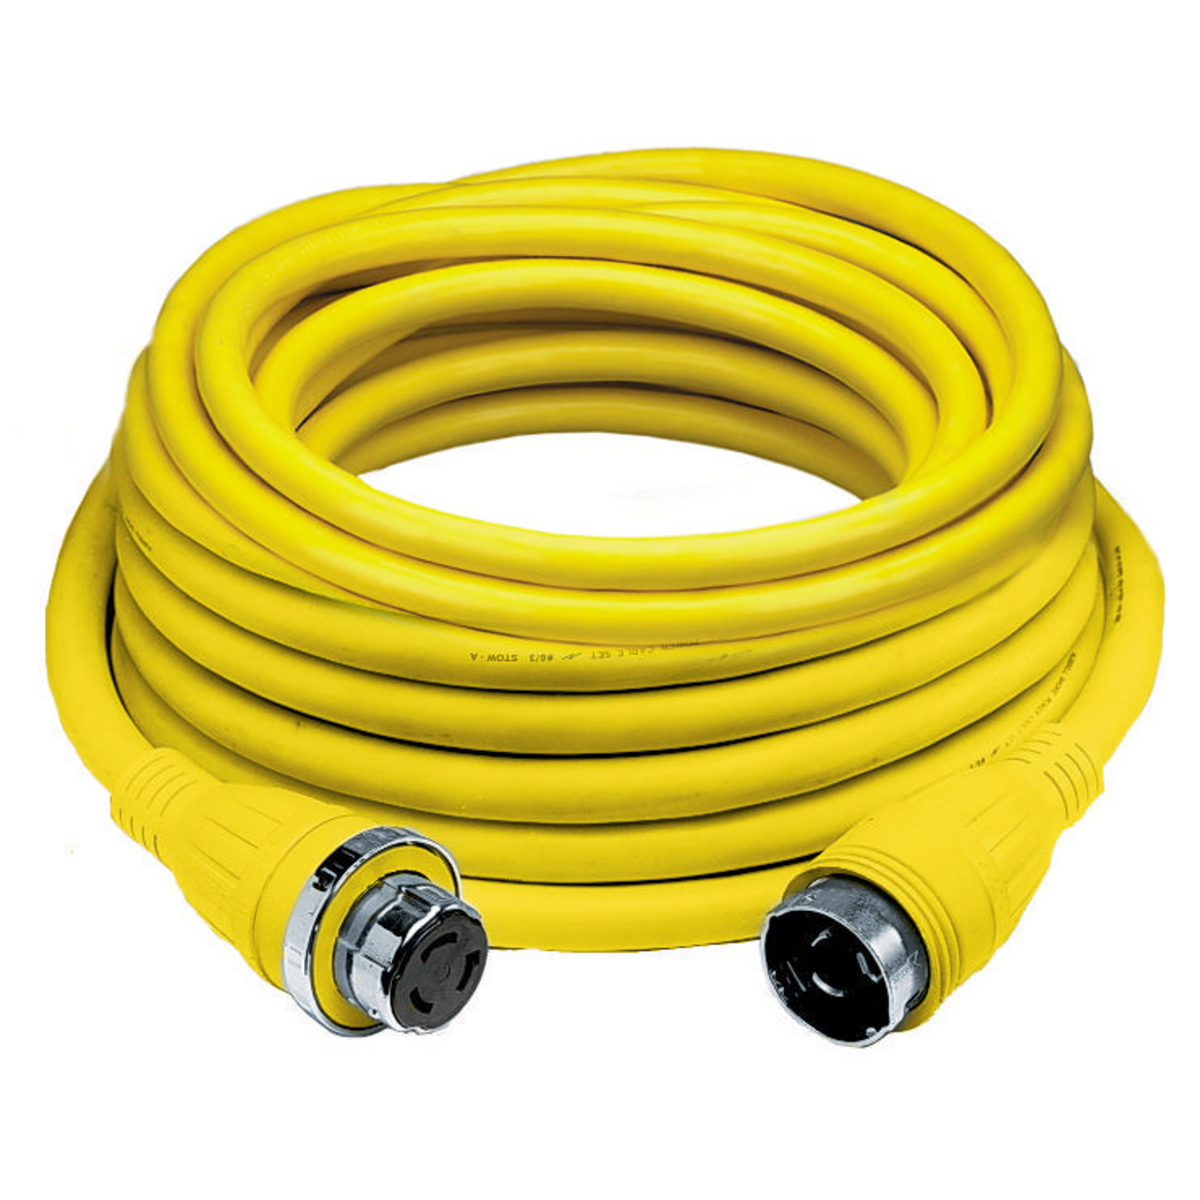 Hubbell HBL61CM43 Marine CABLE, 25', 50A, 125V, YL